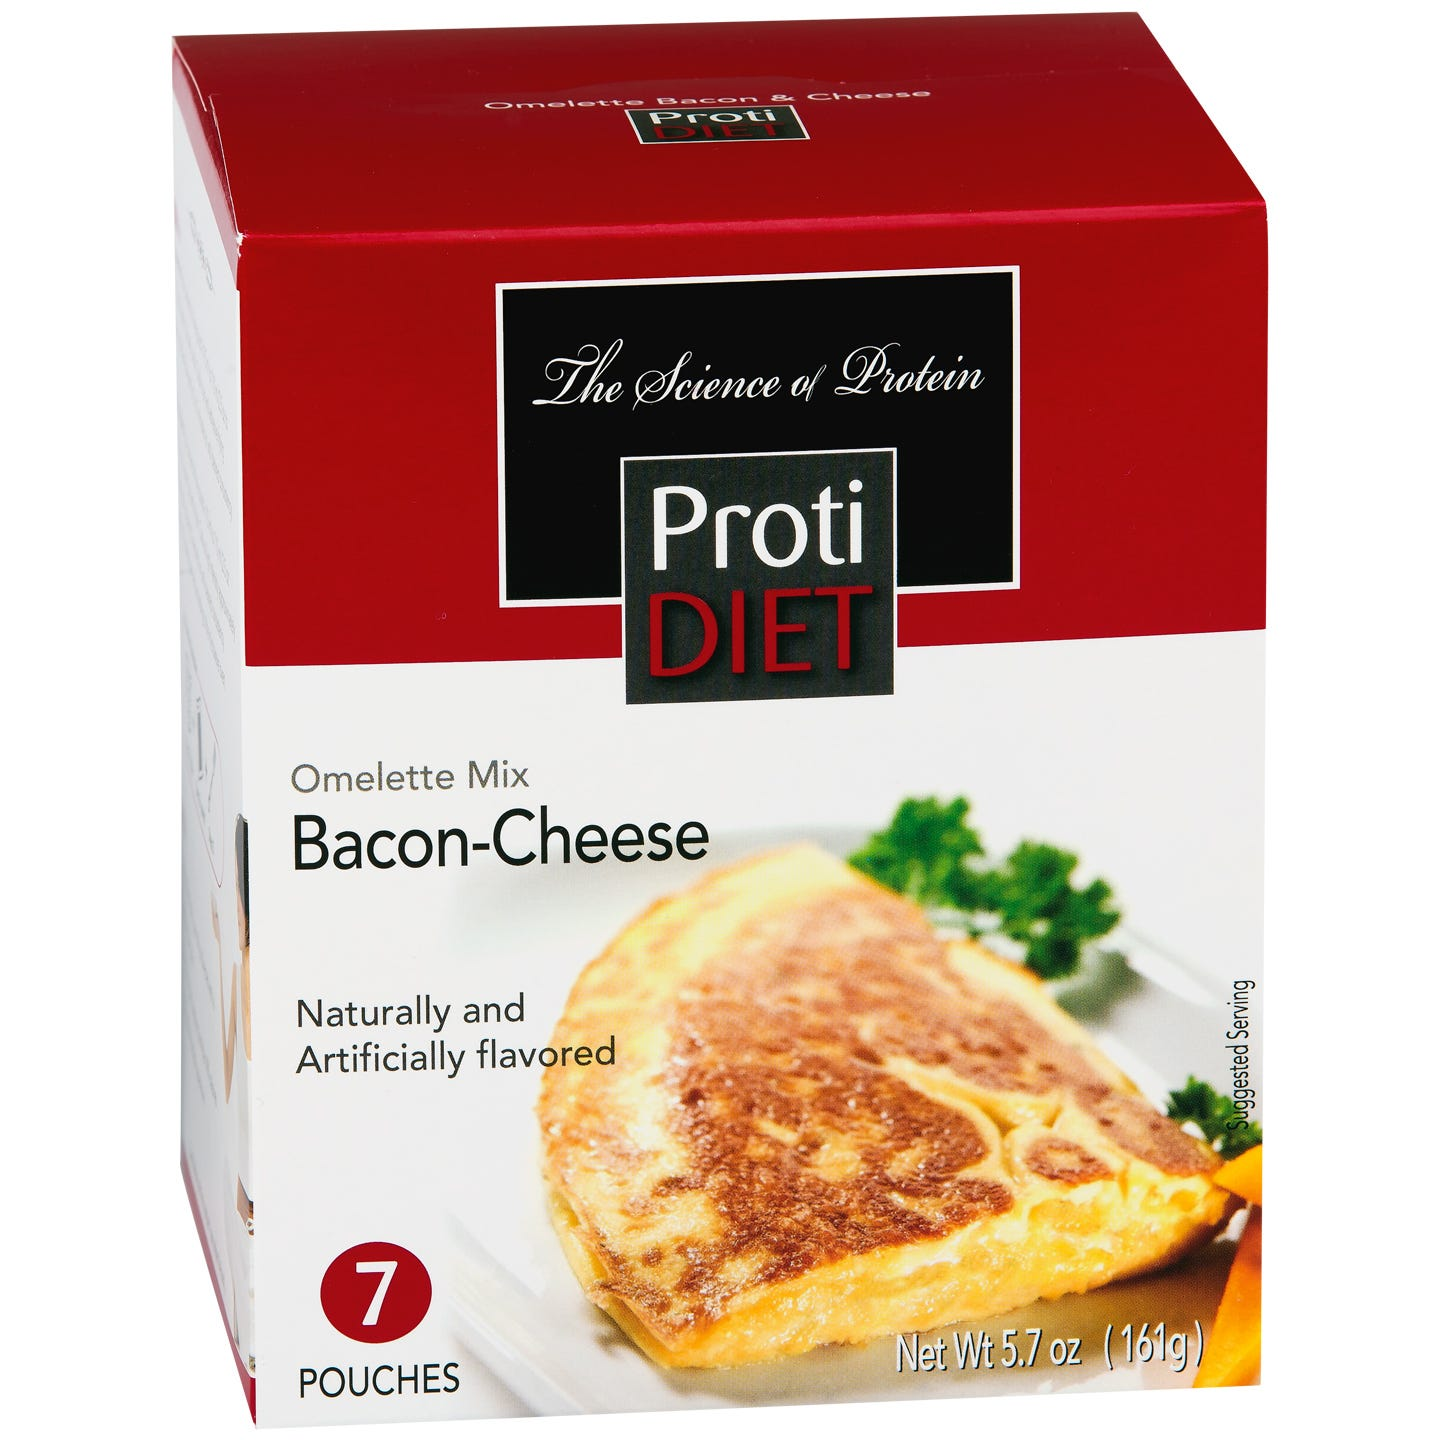 Bacon & Cheese Omelette Mix (7 ct) - ProtiDiet - Rapid Diet Weight Loss Products Shop